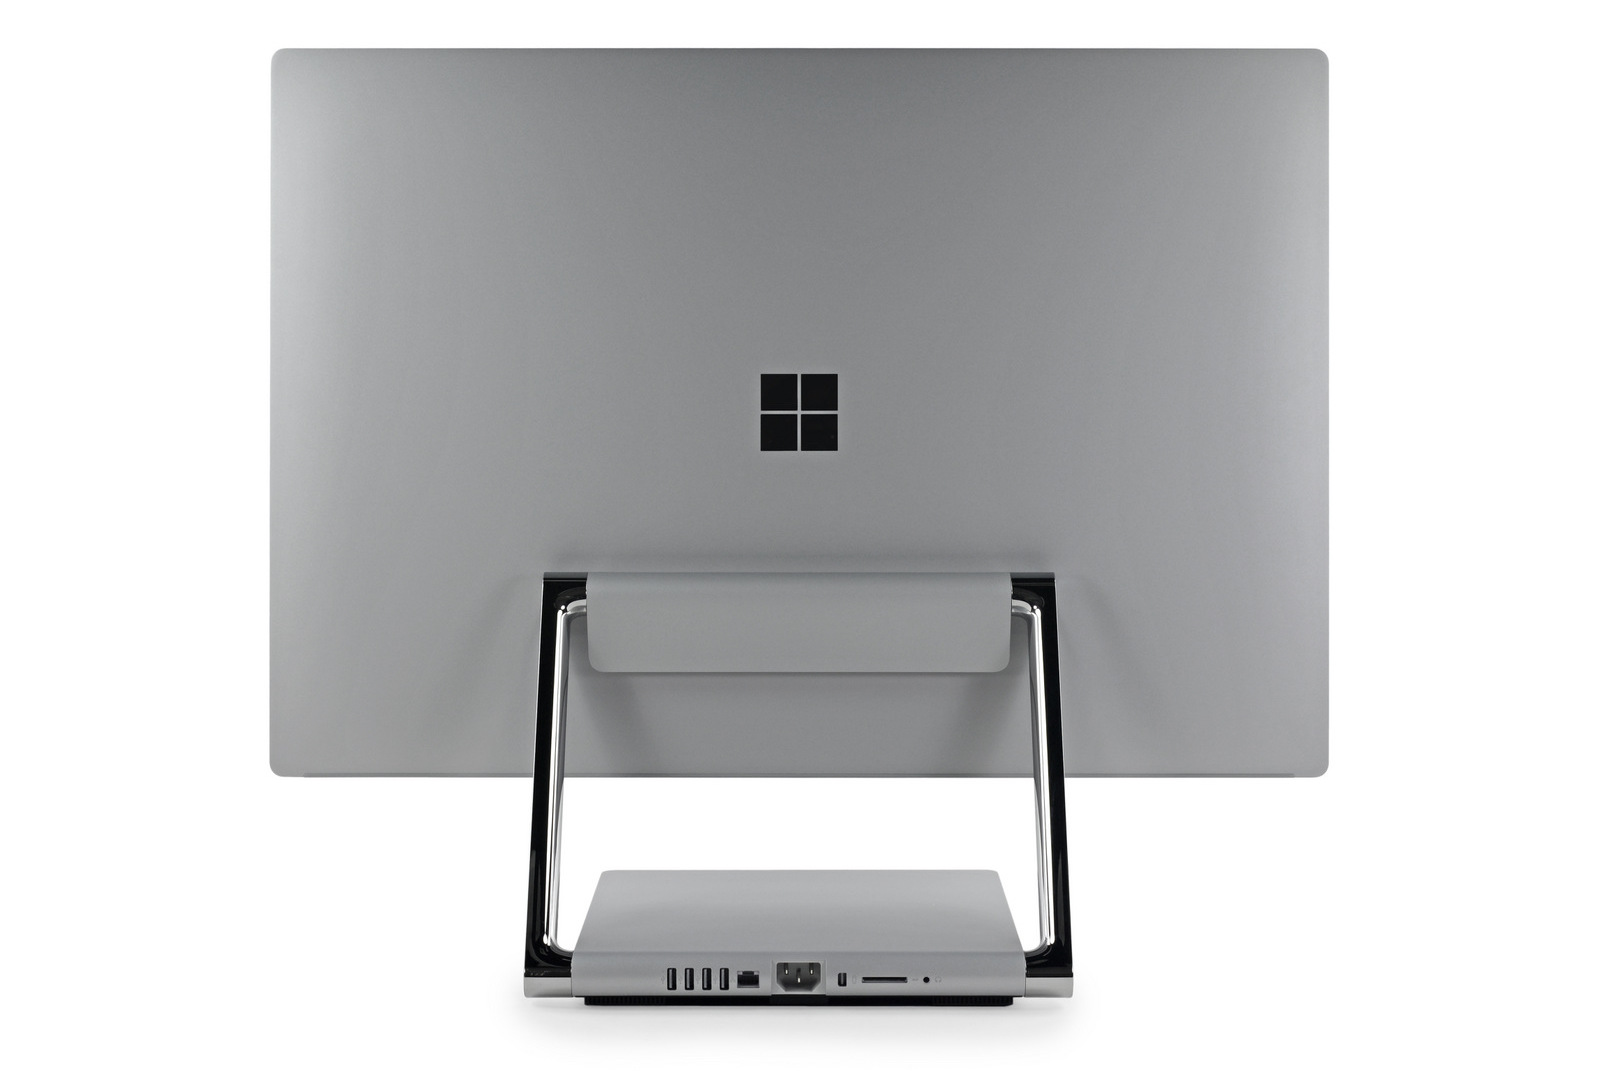 mo-se-sieu-mau-lang-pc-microsoft-surface-studio1